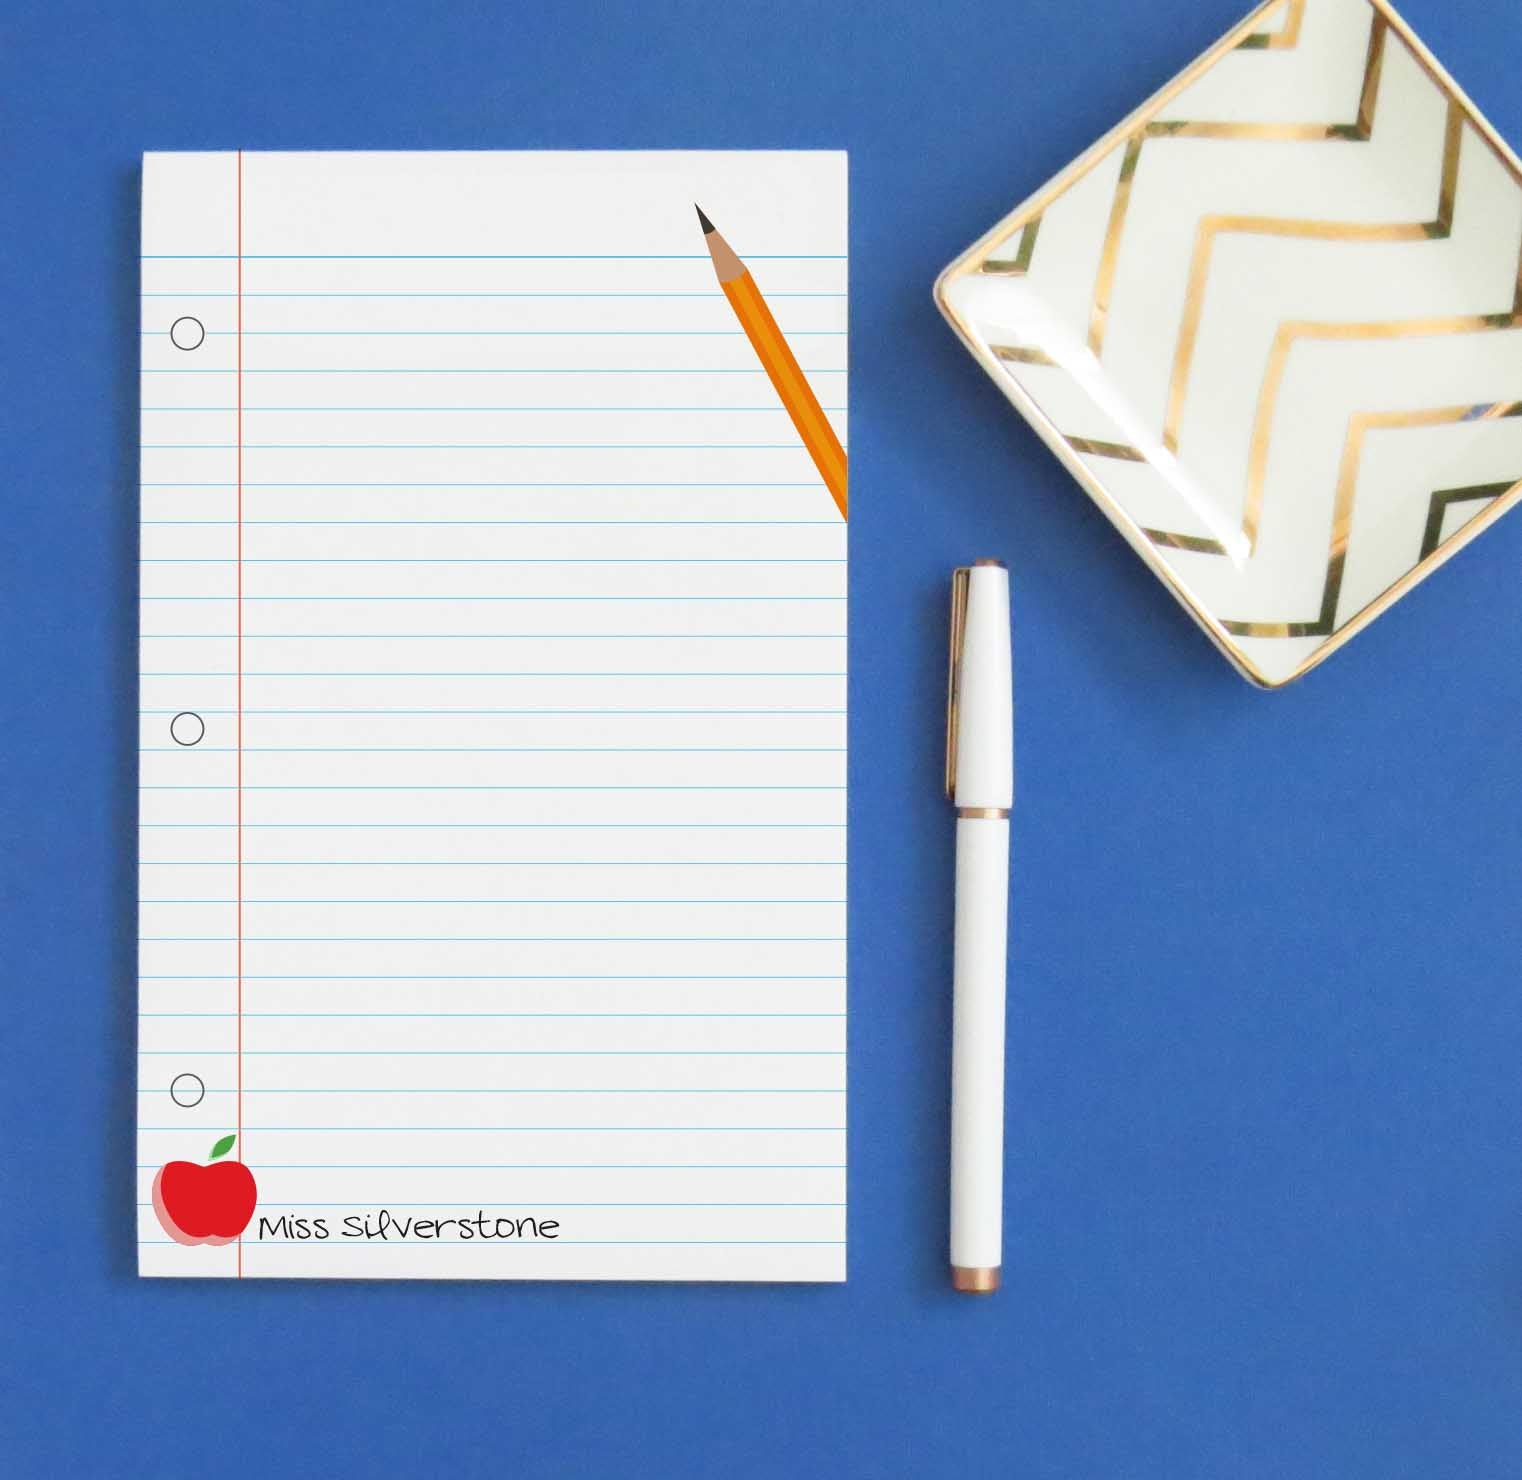 NP164 teacher apple pencil college ruled paper school principal educator personalized